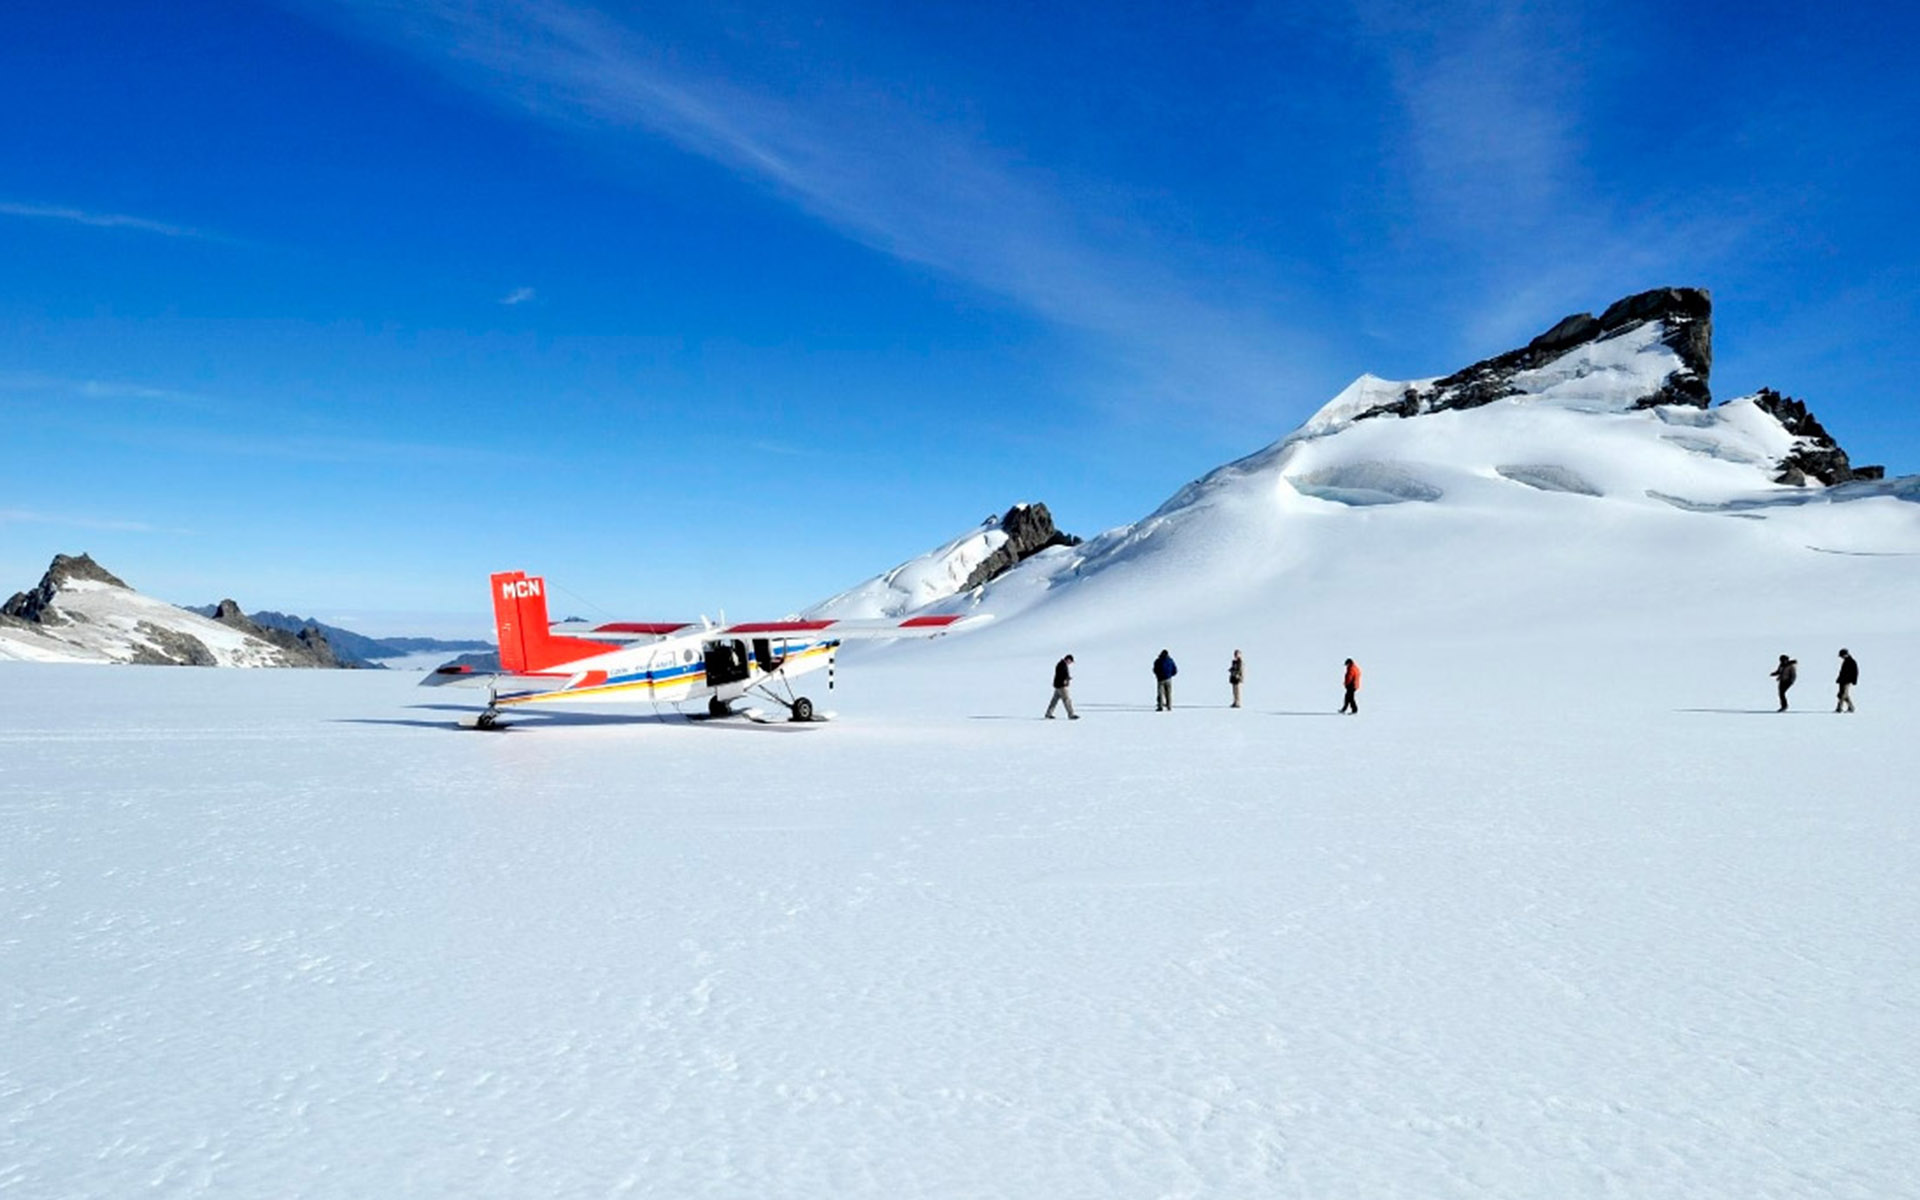 tasman helicopters with Mount Cook Ski Planes Helicopters on Hera Lindsay Bird further Scenery From Above Tours furthermore How Tekapo Became A Global Village moreover Mount Cook Ski Planes Helicopters additionally Capella Lodge Lord Howe Island Australia.